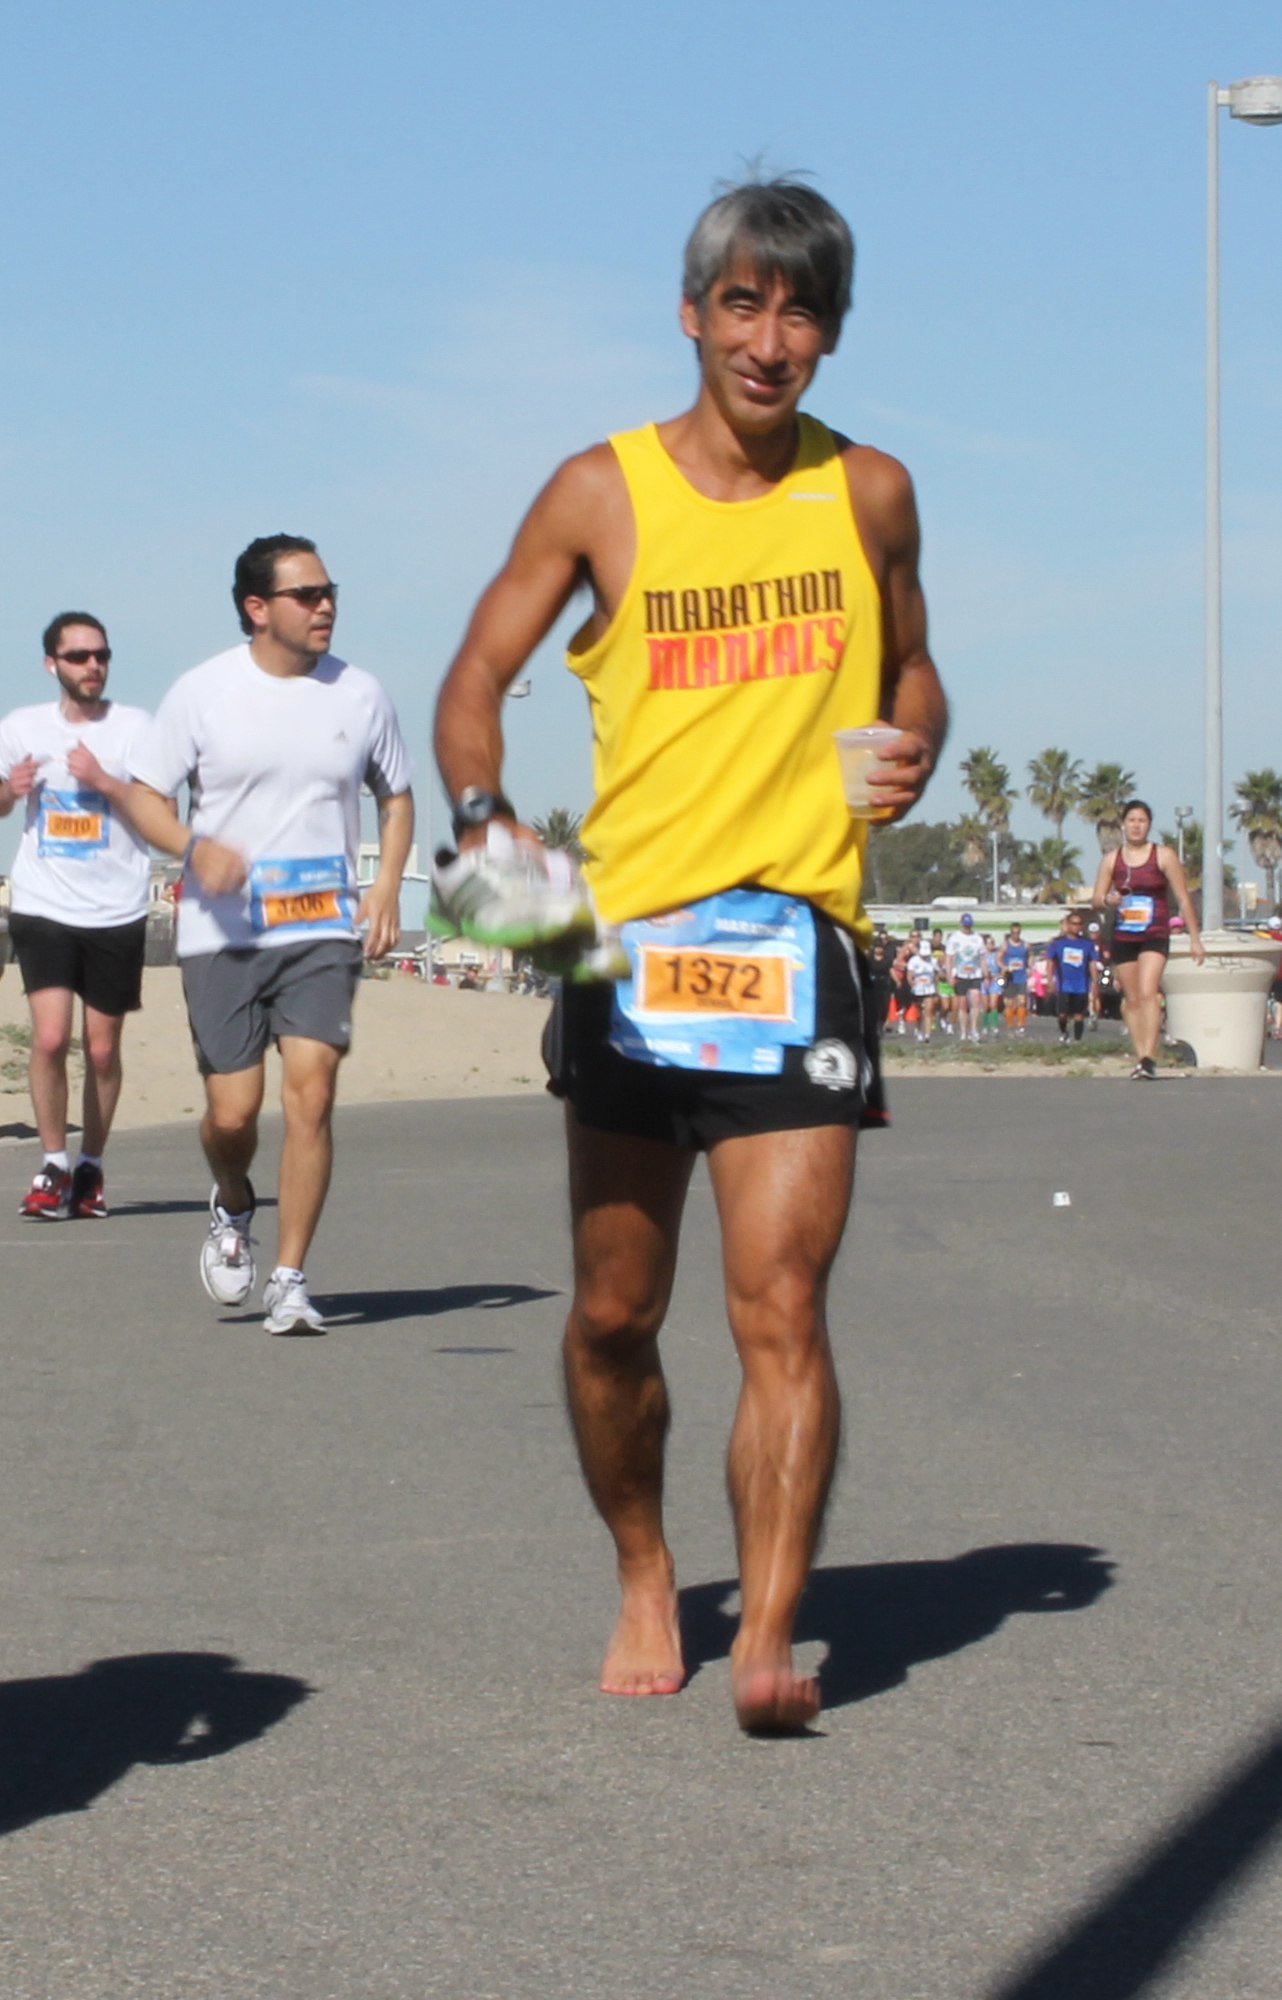 Dennis barefoot for camera (2012 February 5) Surf City Marathon